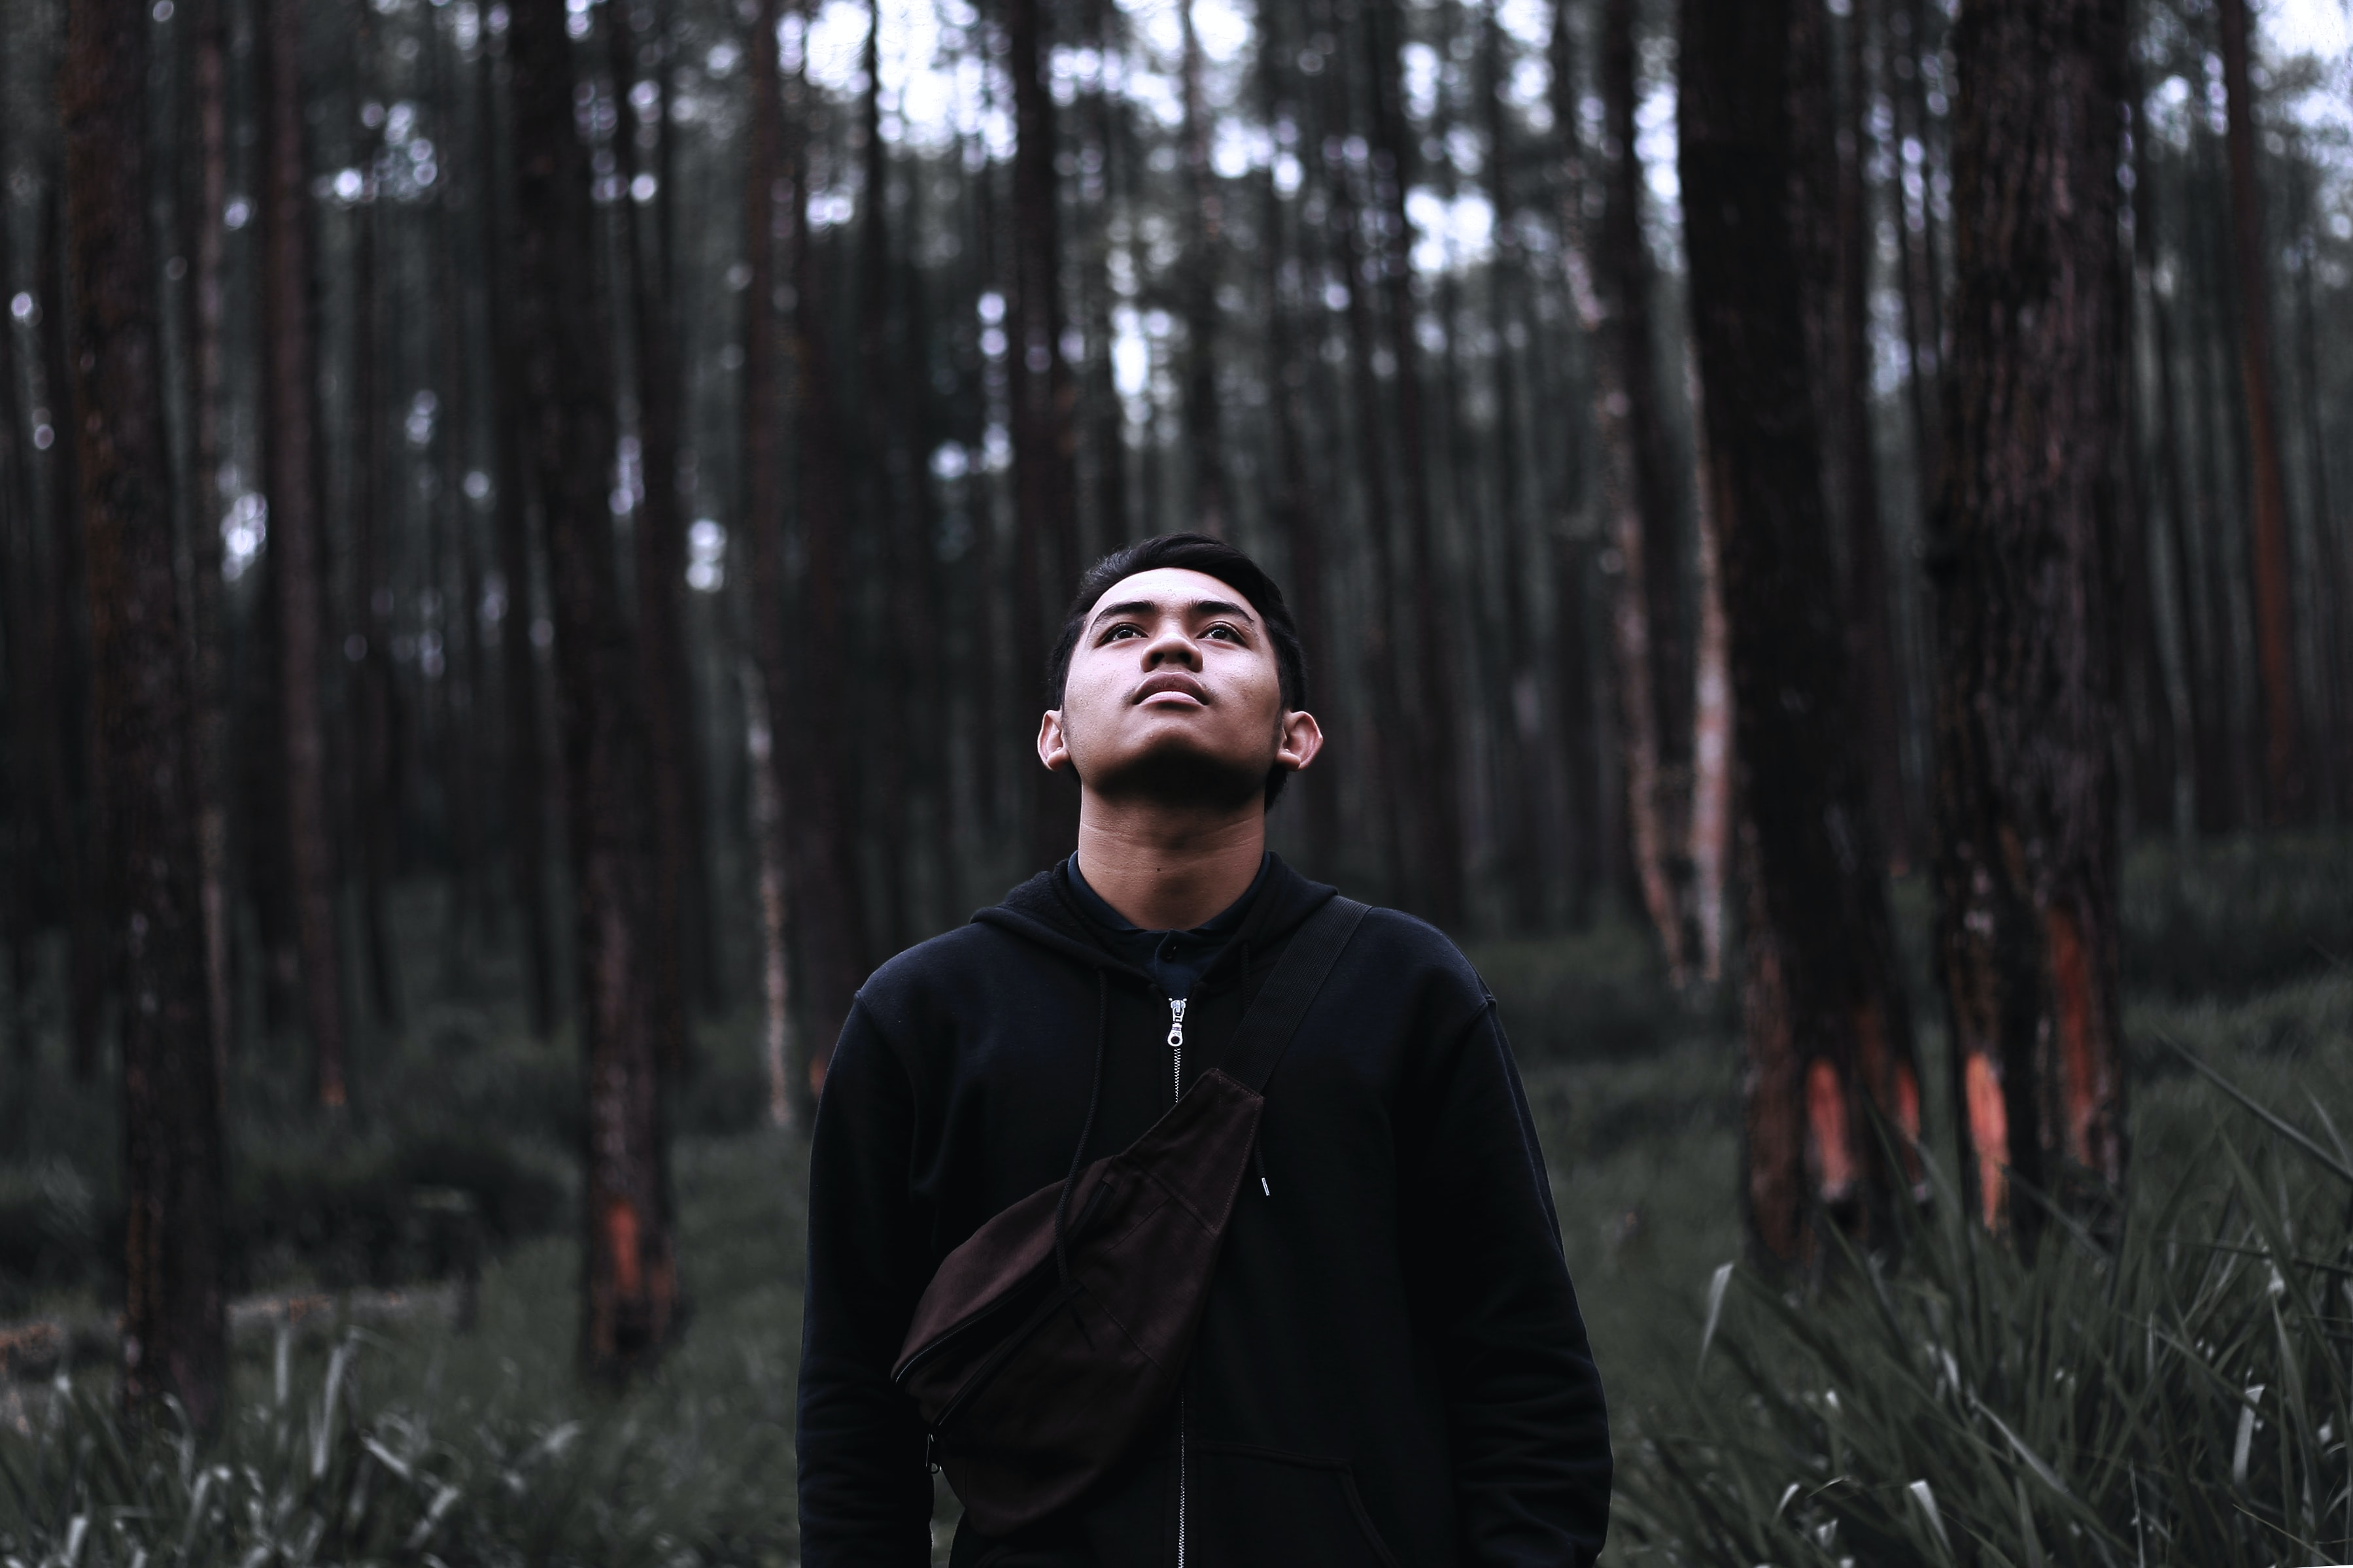 A young man standing in tall grass in a forest and looking up